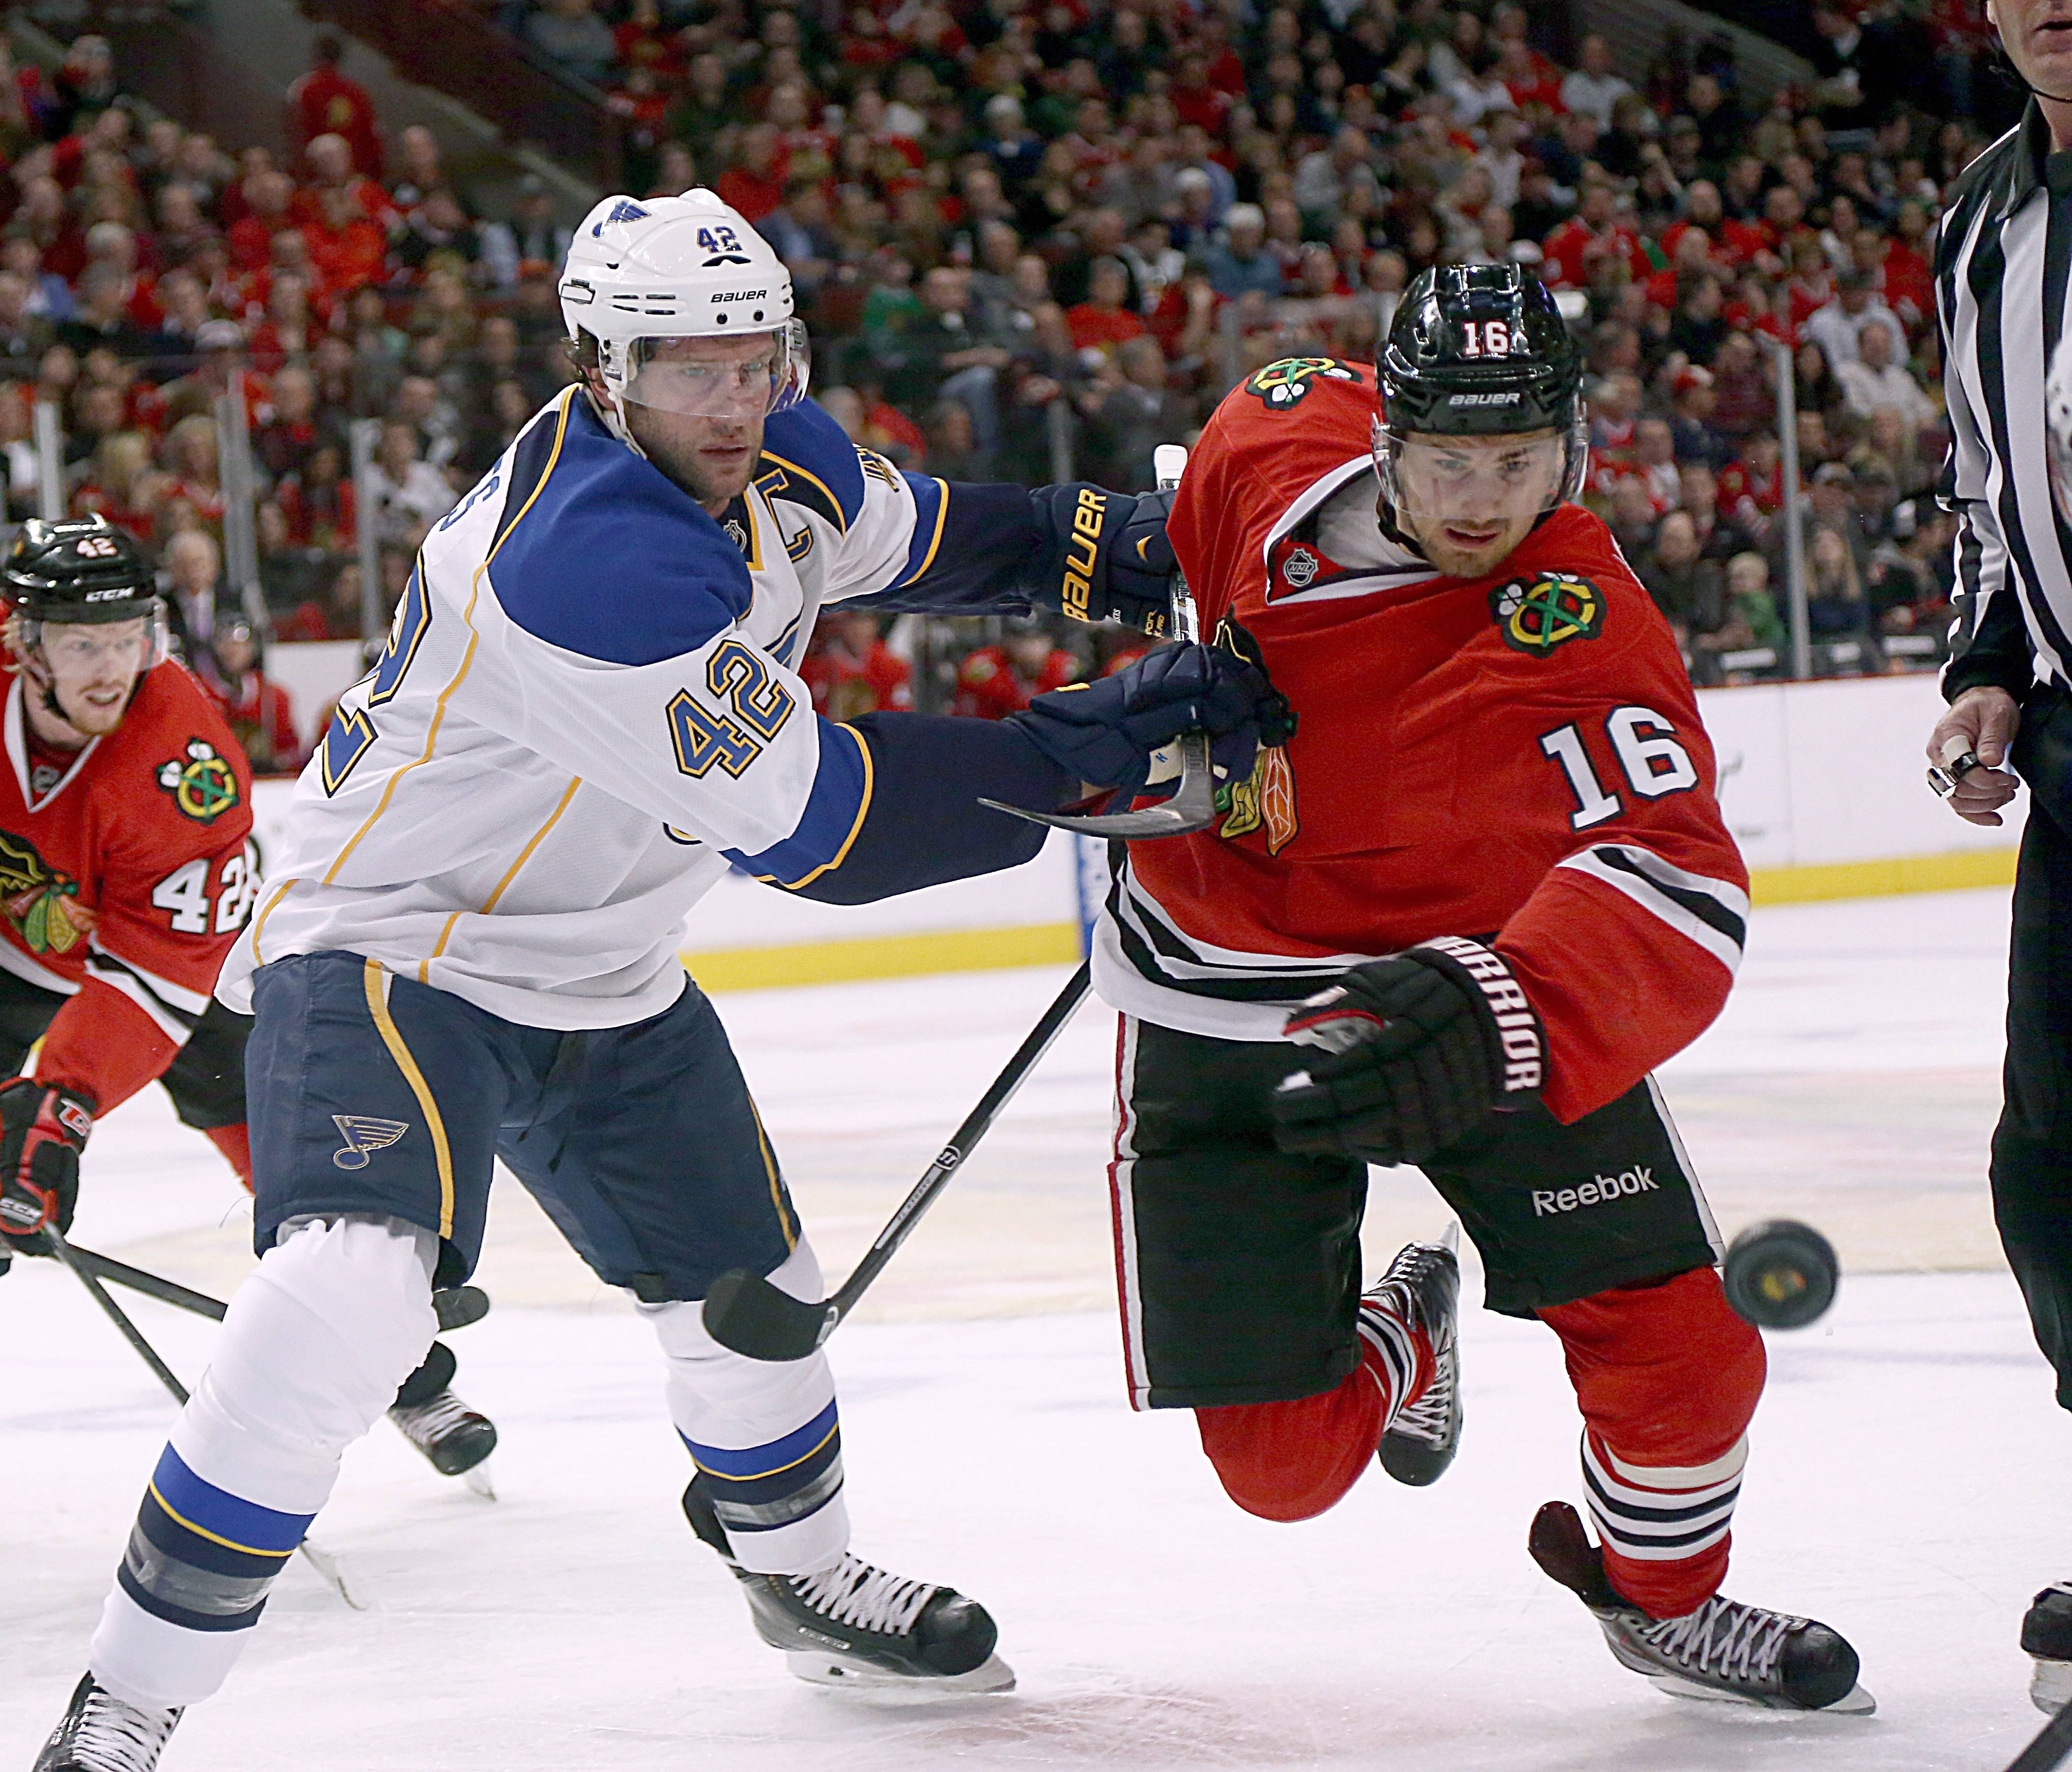 Tight battles for the pucks like this one between the Blackhawks' Marcus Kruger, right, and the Blues' David Backes start anew in Thursday night's series opener.